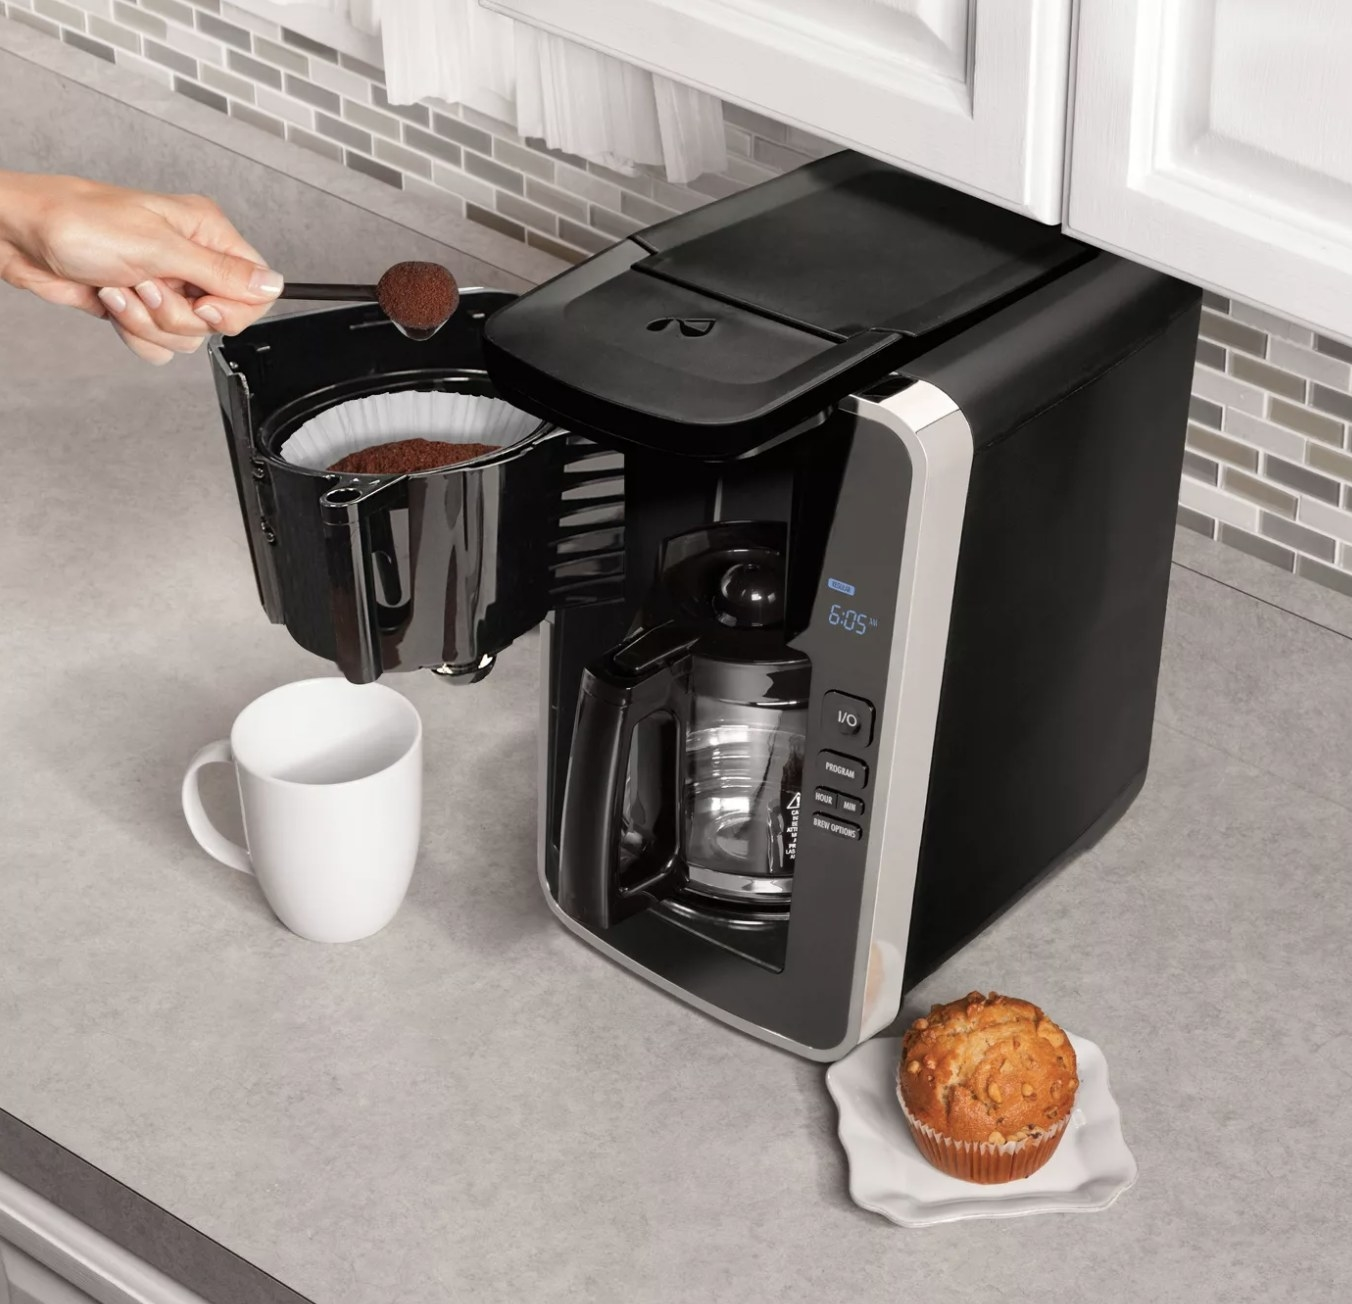 Person is pouring coffee into the coffee filter port in the coffee maker